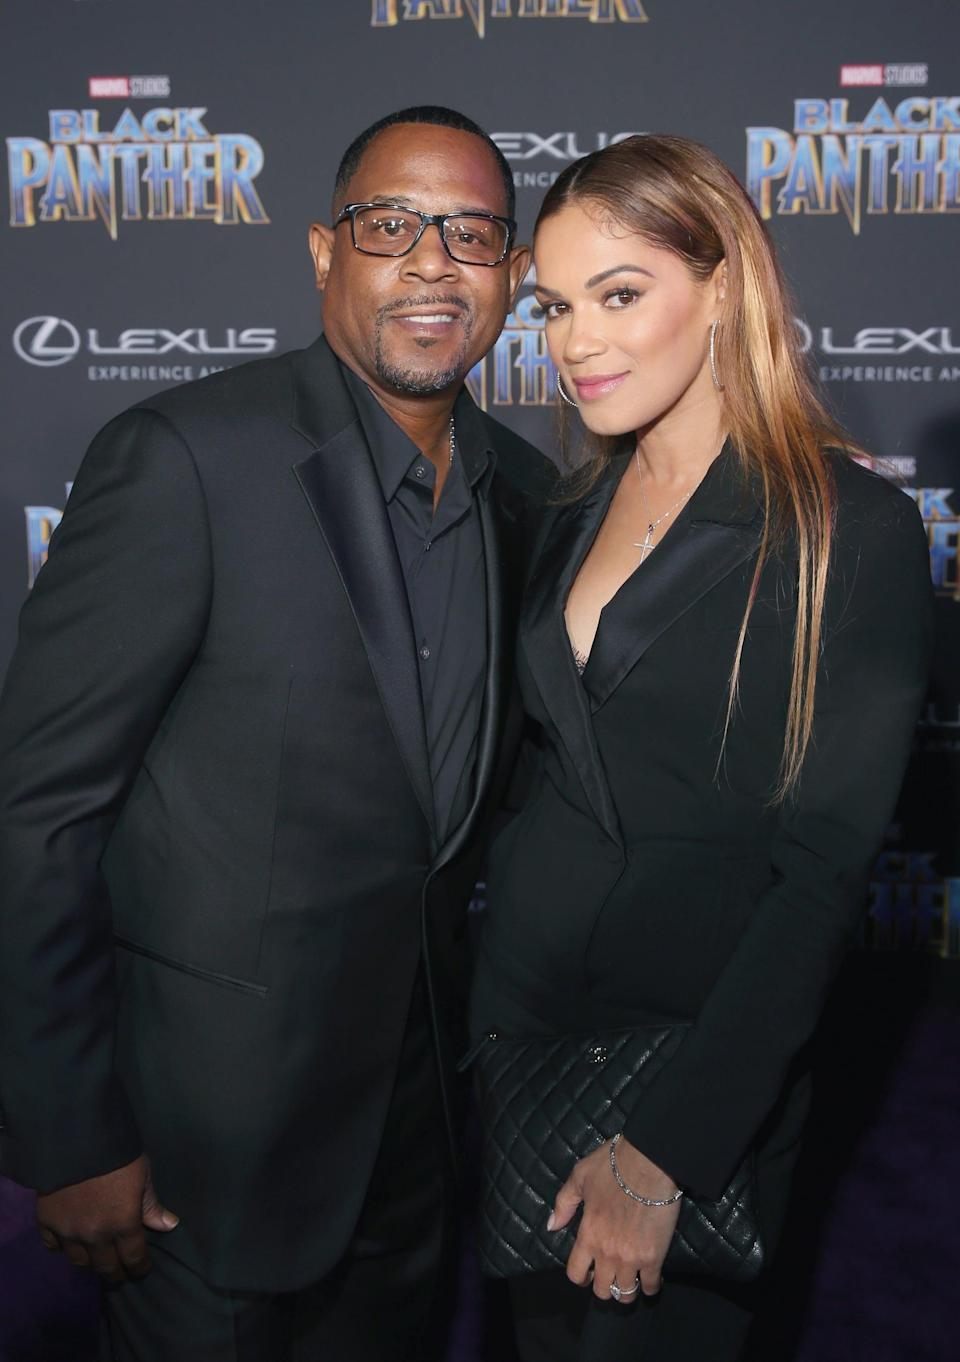 "<p>The actor popped the question to his girlfriend in late March 2017. Roberta later gushed over <a href=""http://people.com/movies/martin-lawrence-roberta-moradfar-engagement-ring/"" class=""link rapid-noclick-resp"" rel=""nofollow noopener"" target=""_blank"" data-ylk=""slk:their engagement on Instagram"">their engagement on Instagram</a>, writing, ""And I said 'YES!' ❤️❤️❤️❤️❤️3.31.2017 marks a huge milestone in my life.""</p>"